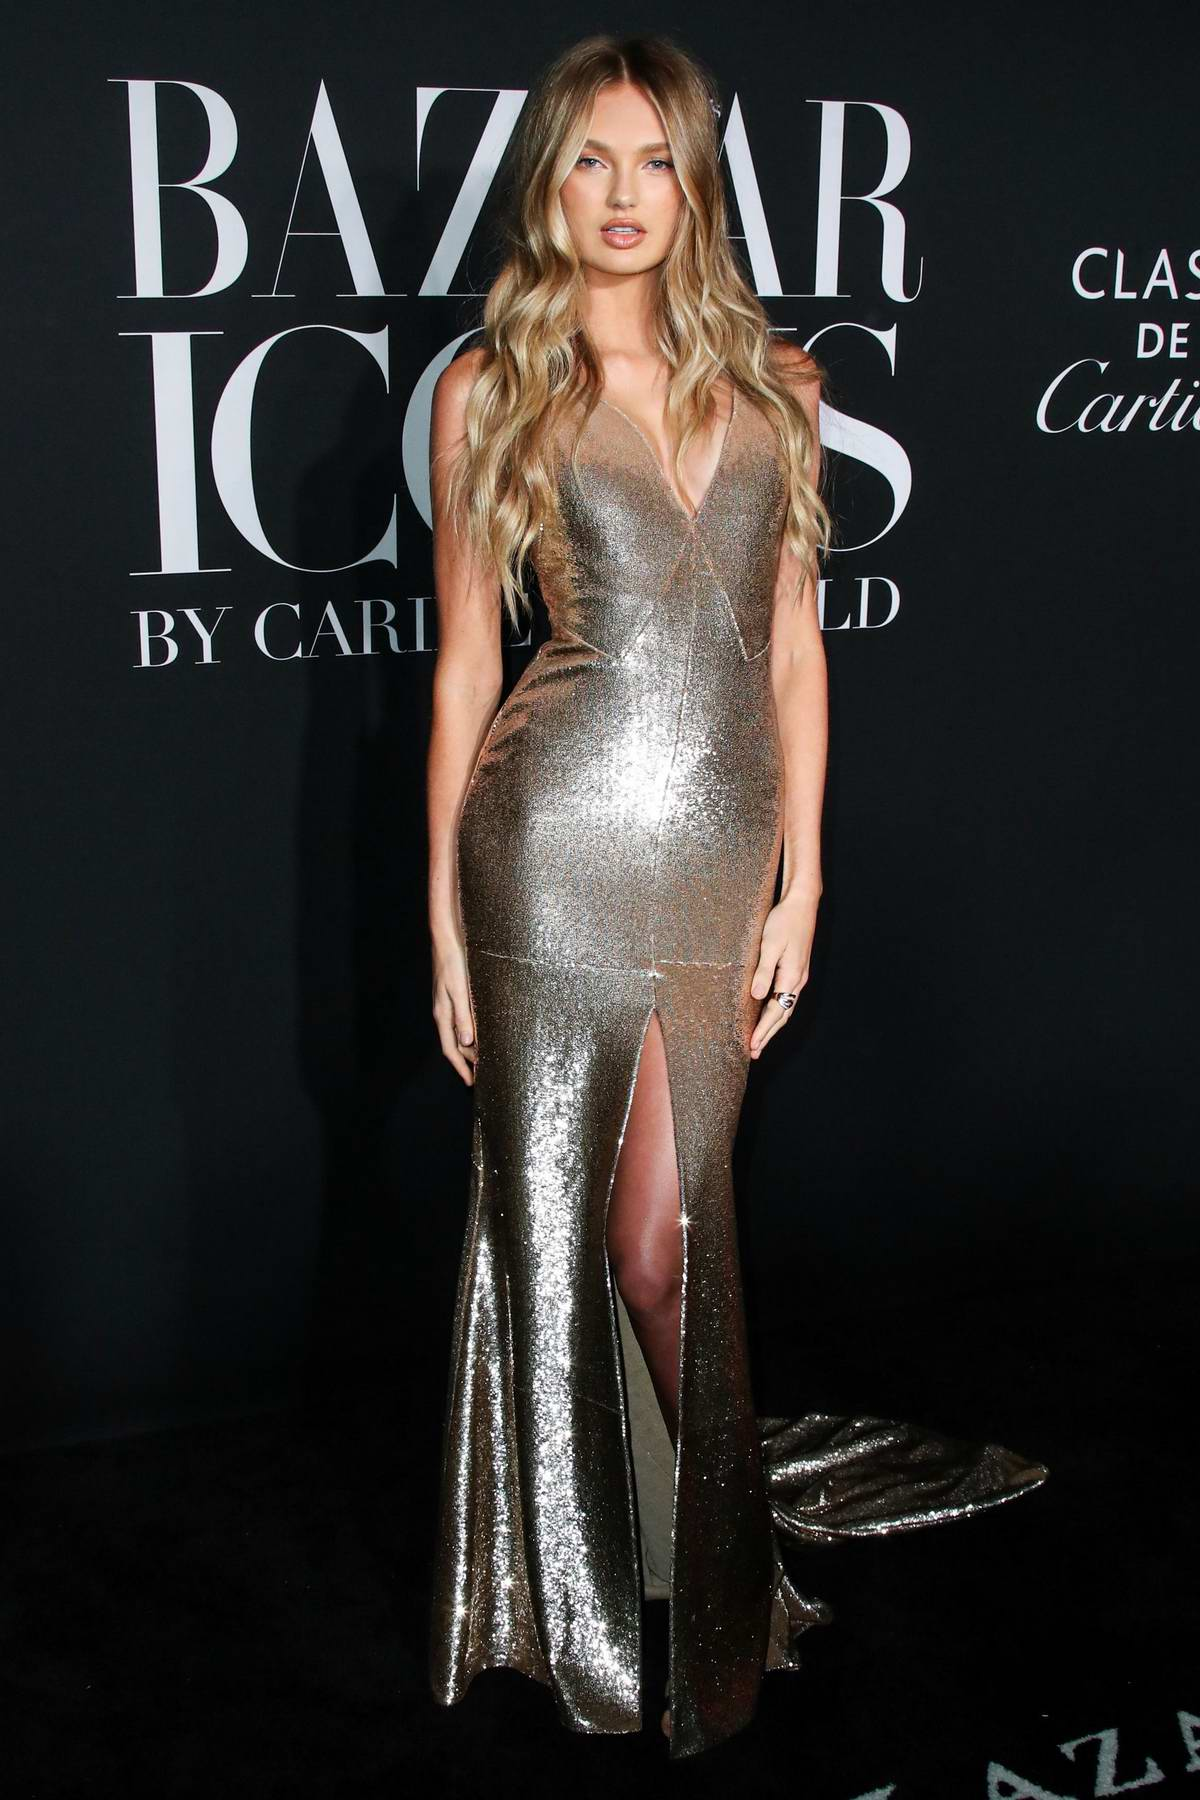 Romee Strijd at the Harper's Bazaar ICONS Party 2019